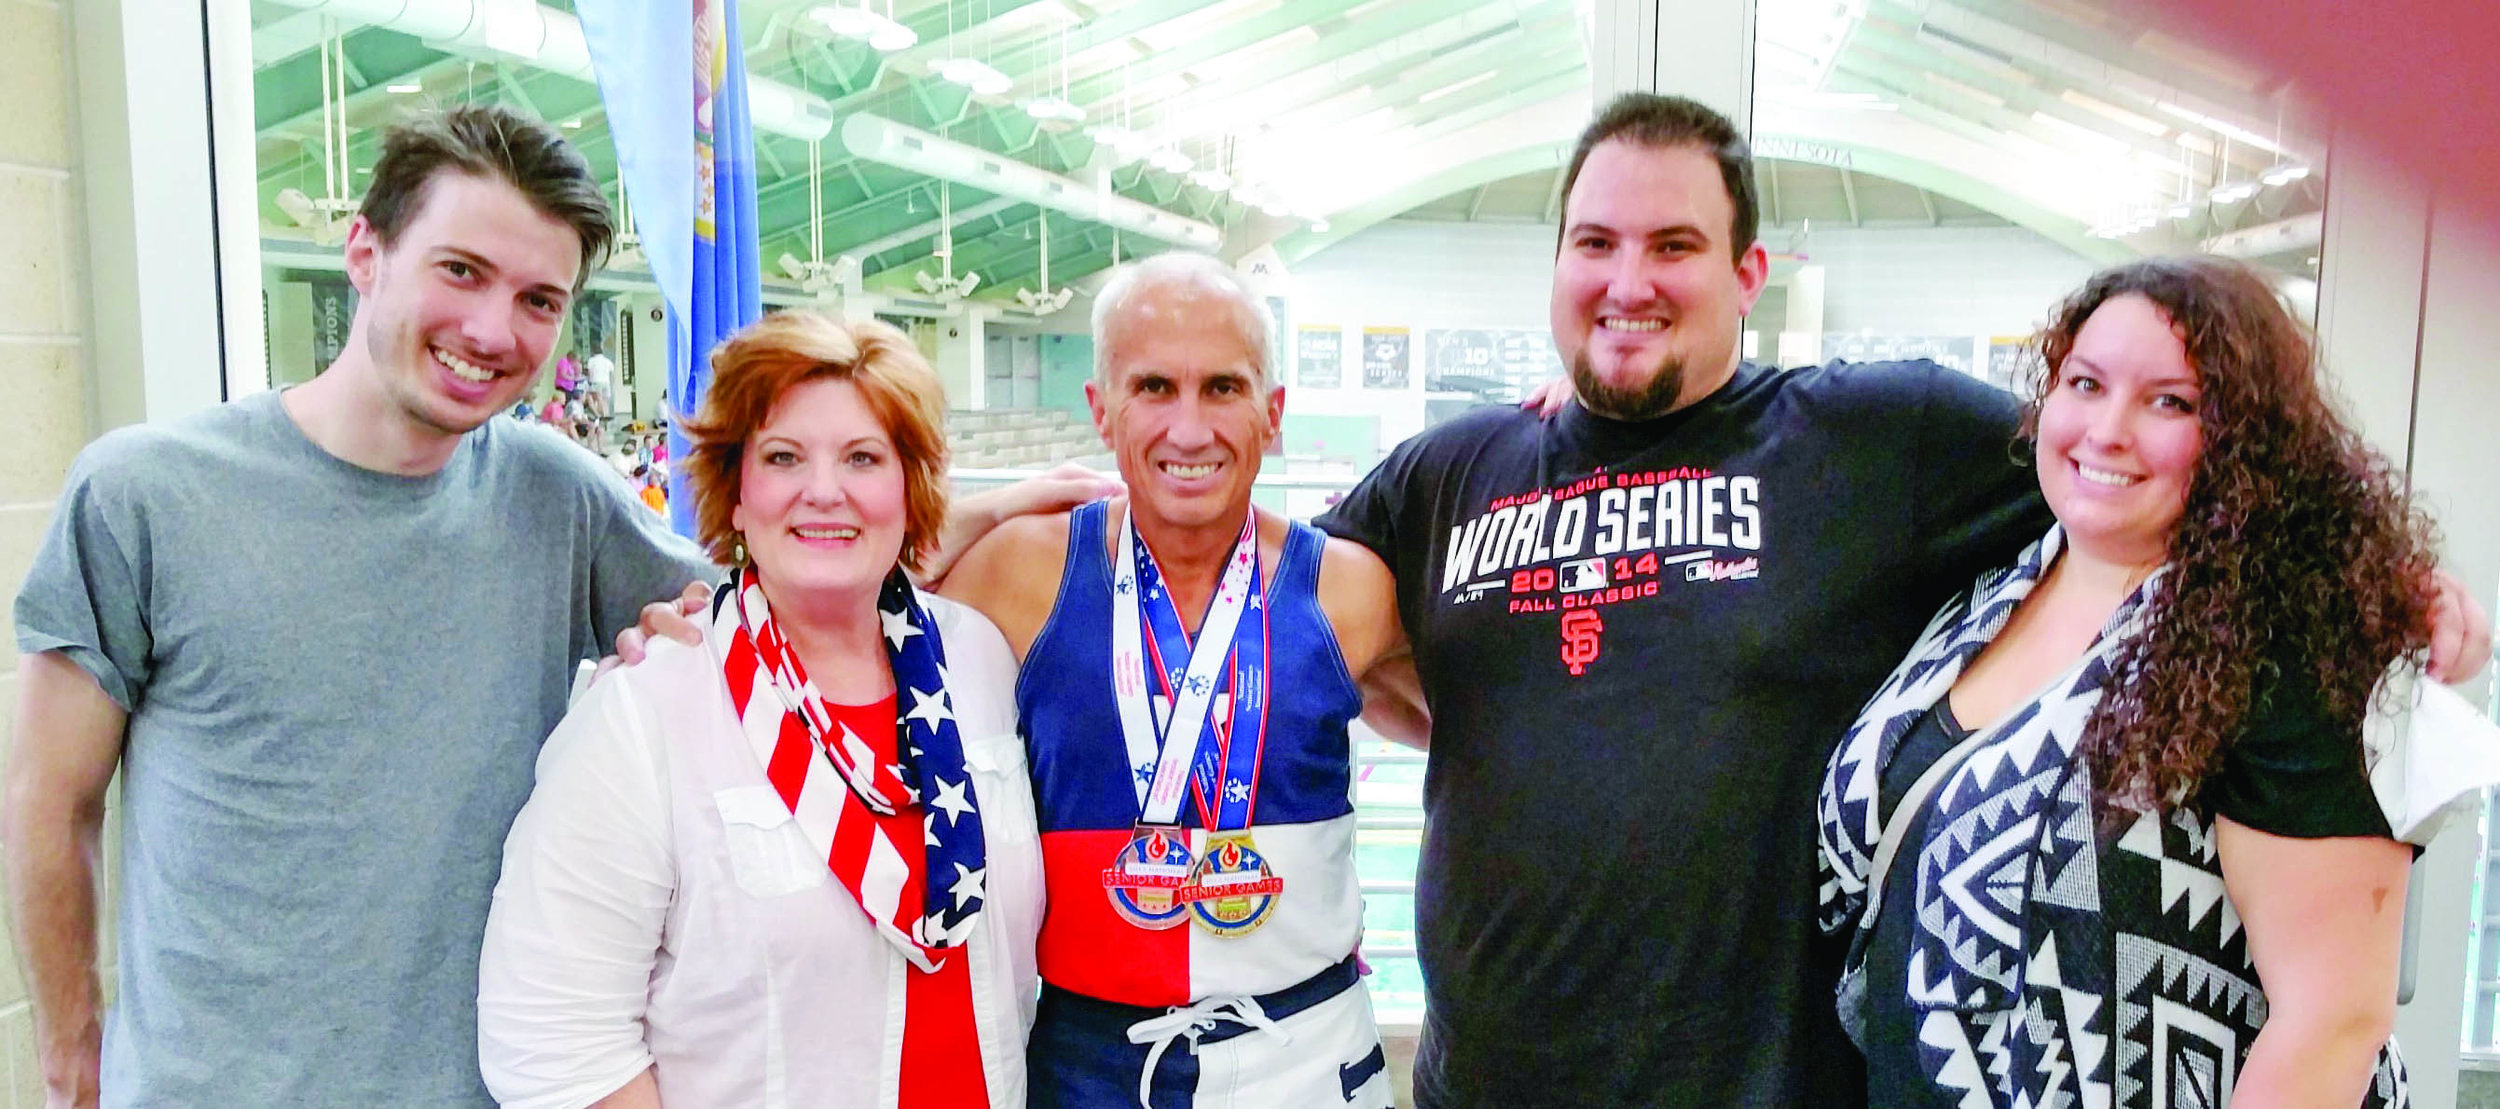 Lee received much family support during Minnesota's National Senior Games in 2015 when he won a gold medal in the 200 yd. breaststroke and a bronze in the 100 yd. breaststroke. Congratulating him are his son, Burkelee; wife, Ginger; and son, Samuel; and daughter-in-law, Anna.